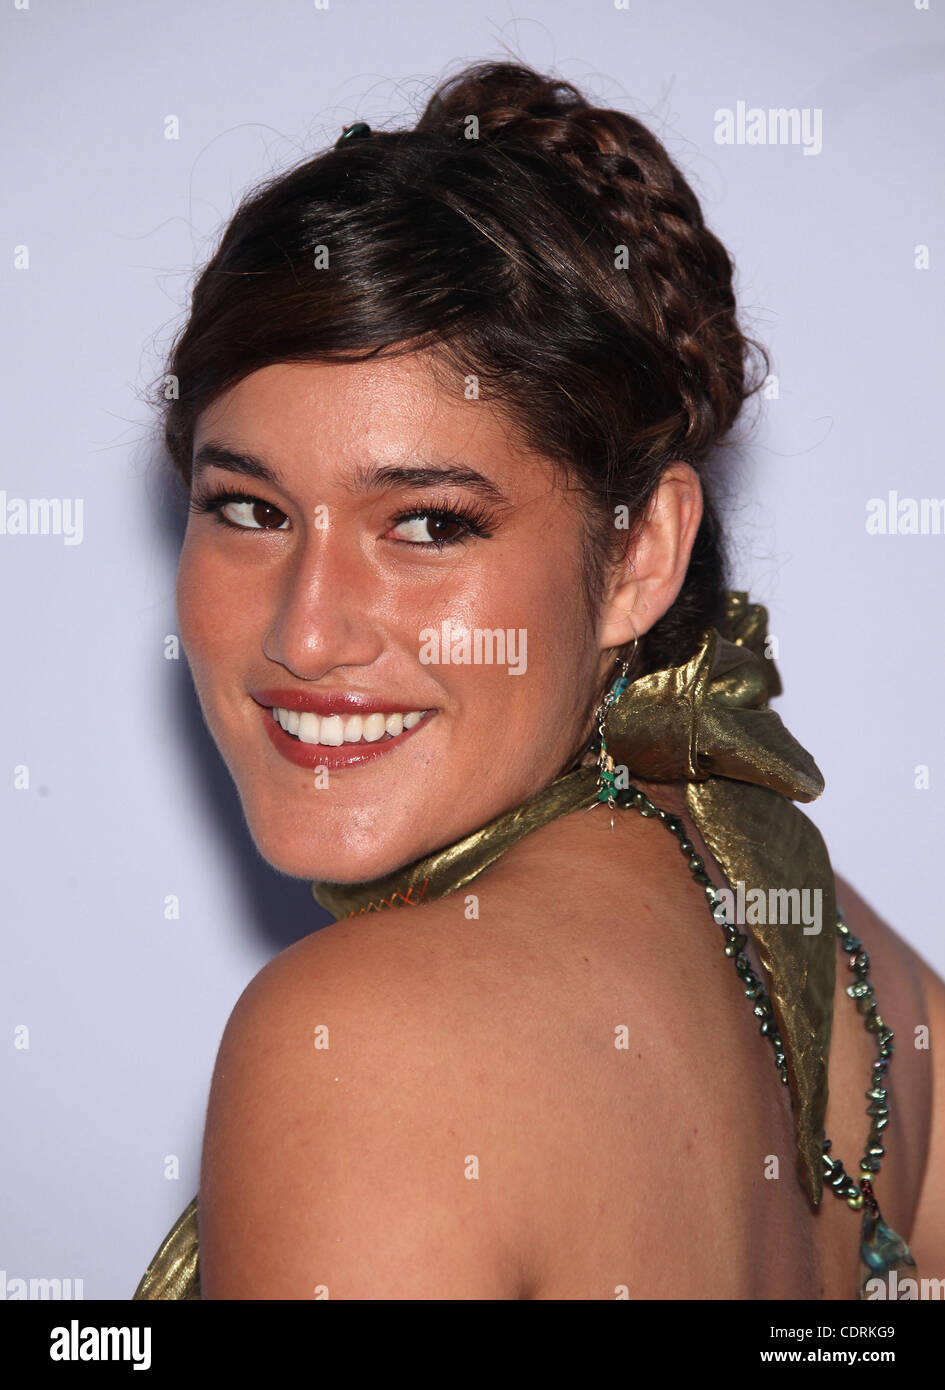 May 24, 2011 - Los Angeles, California, U.S. - Q'ORIANKA KILCHER arrives for the premiere of the film 'Tree - Stock Image